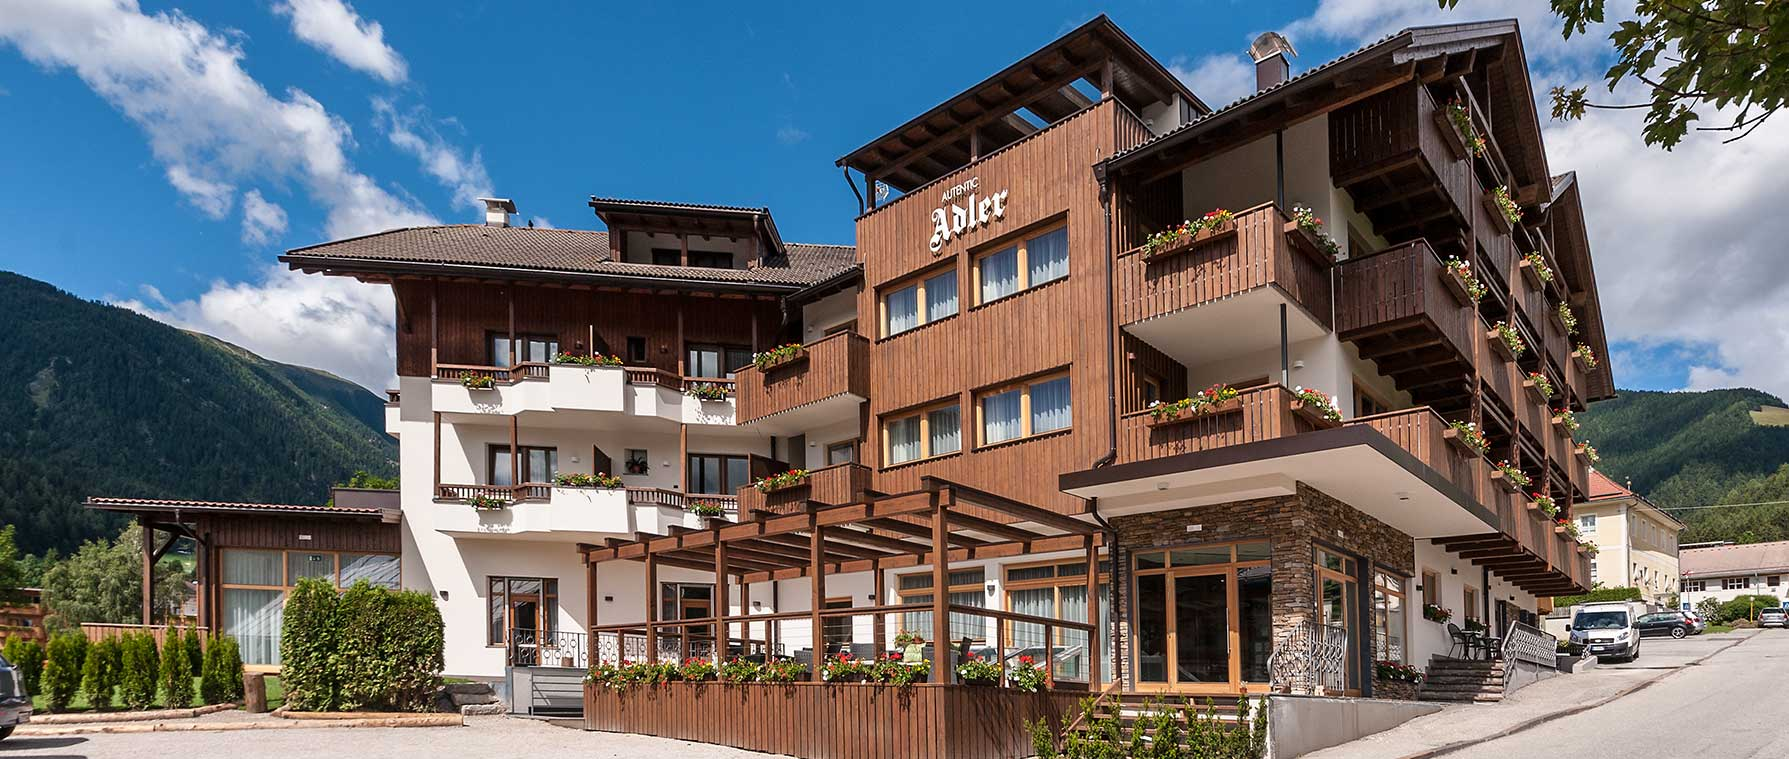 Hotel Autentic Adler in Antholz